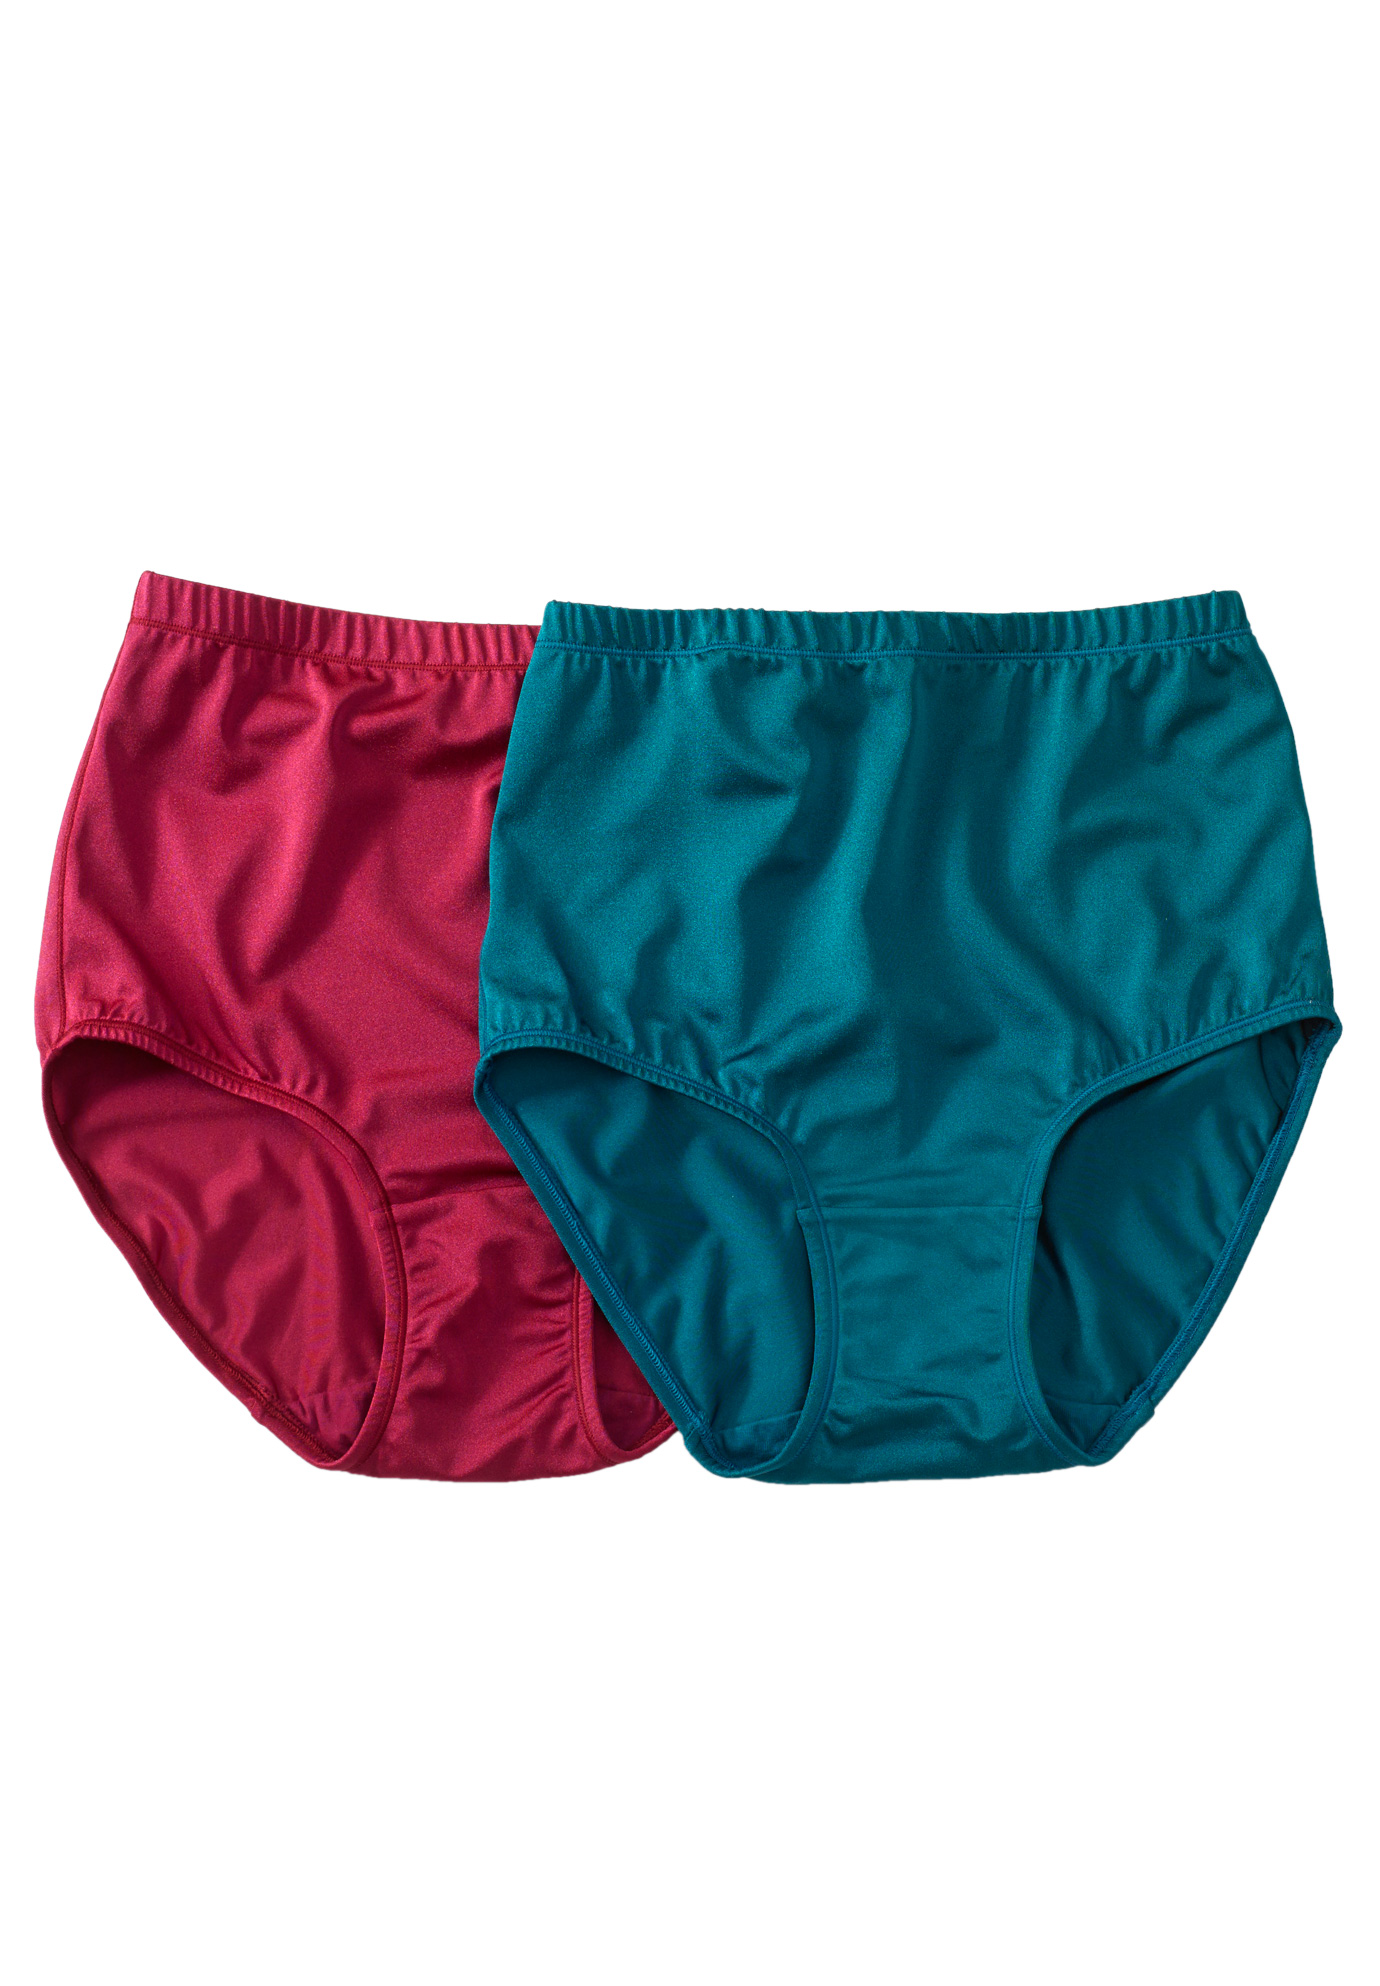 2-Pack Satin Stretch Brief by Comfort Choice®, JEWEL ASSORTED